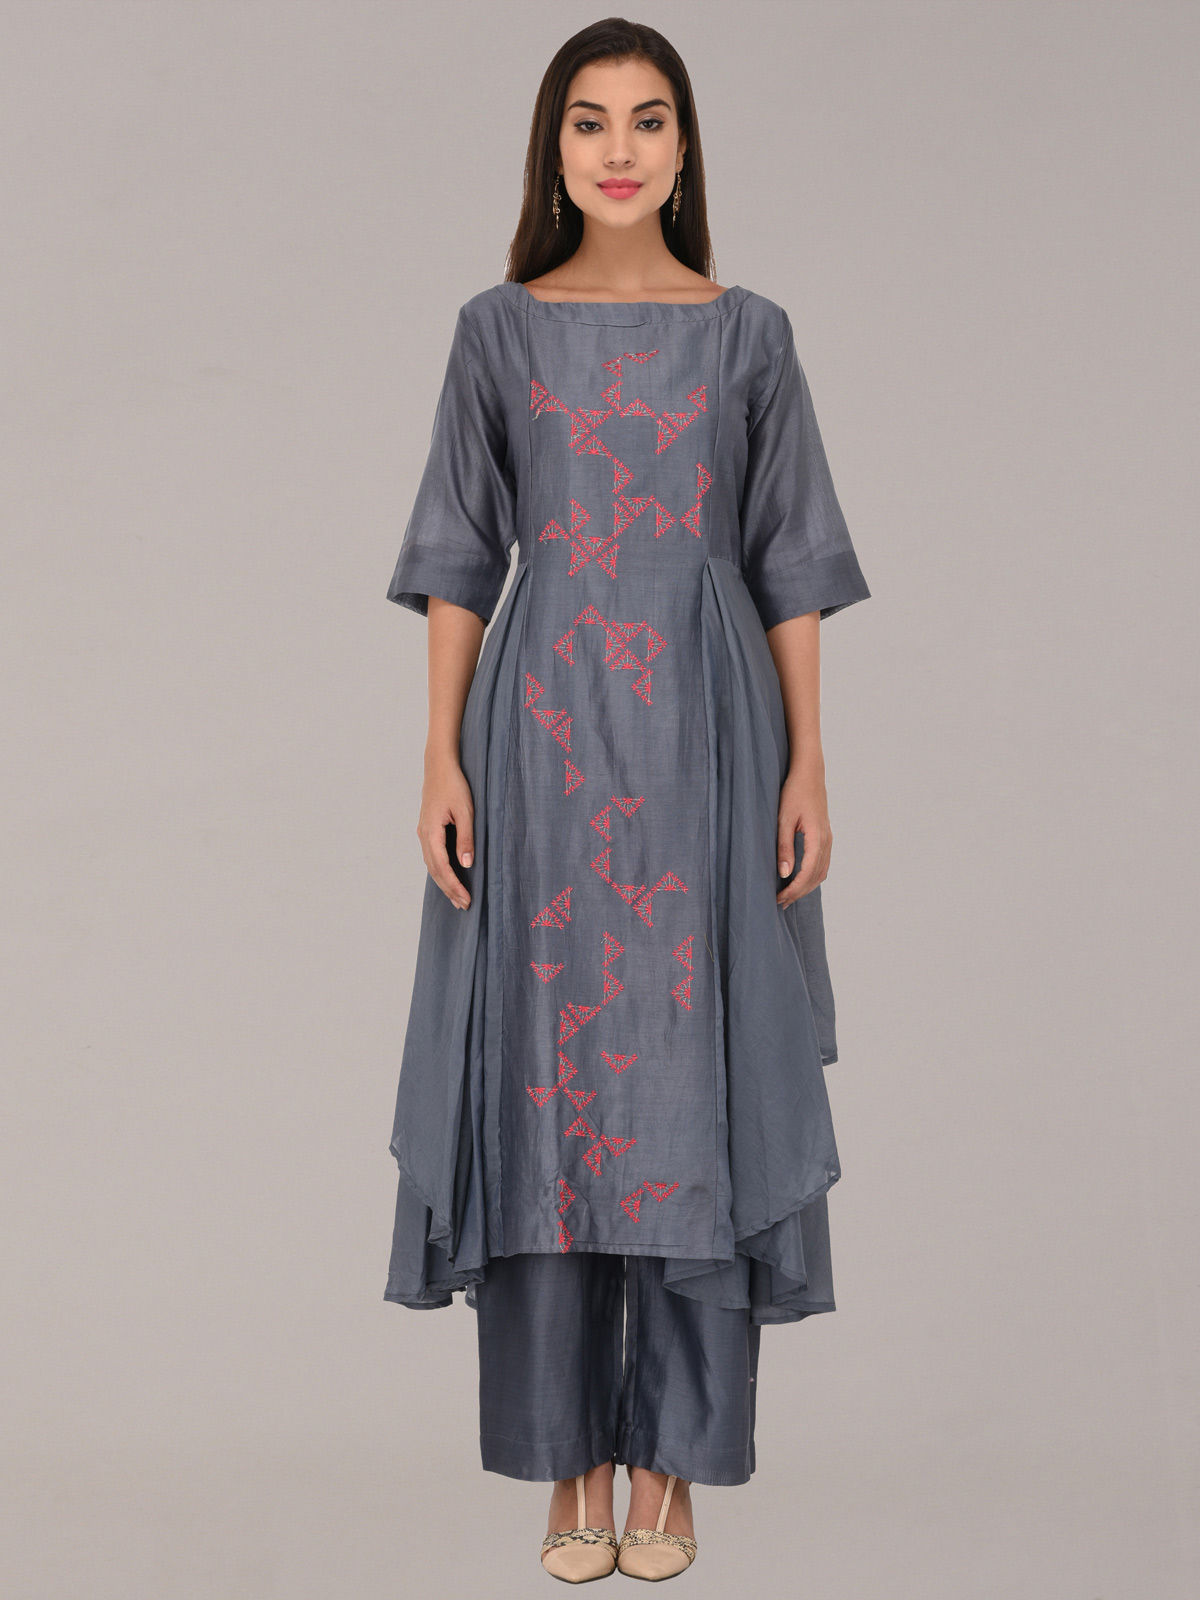 Embroided grey chanderi silk flare tunic with bottom